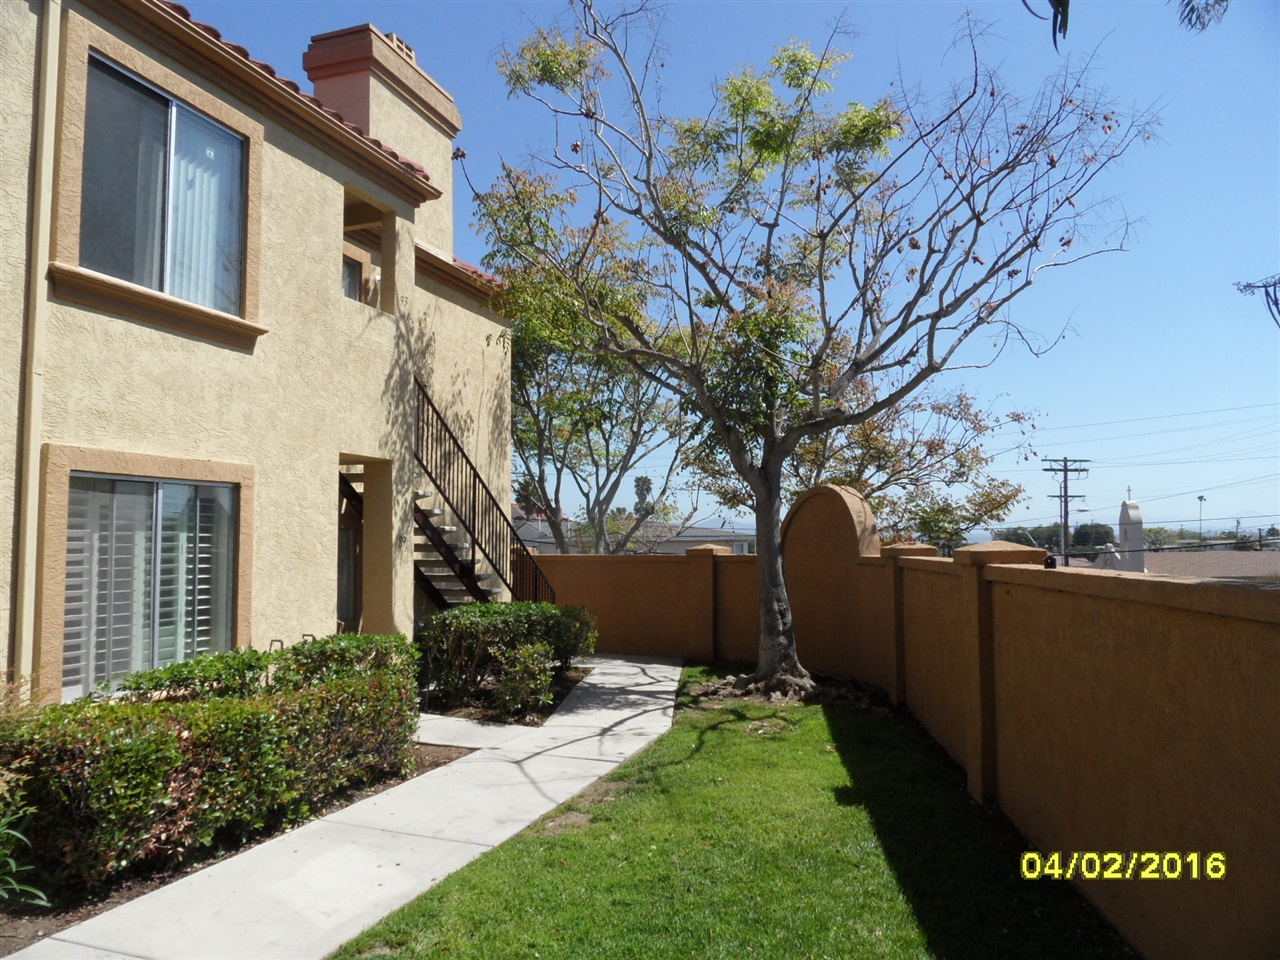 Photo 18: LINDA VISTA Condo for sale : 3 bedrooms : 2012 Coolidge St #93 in San Diego